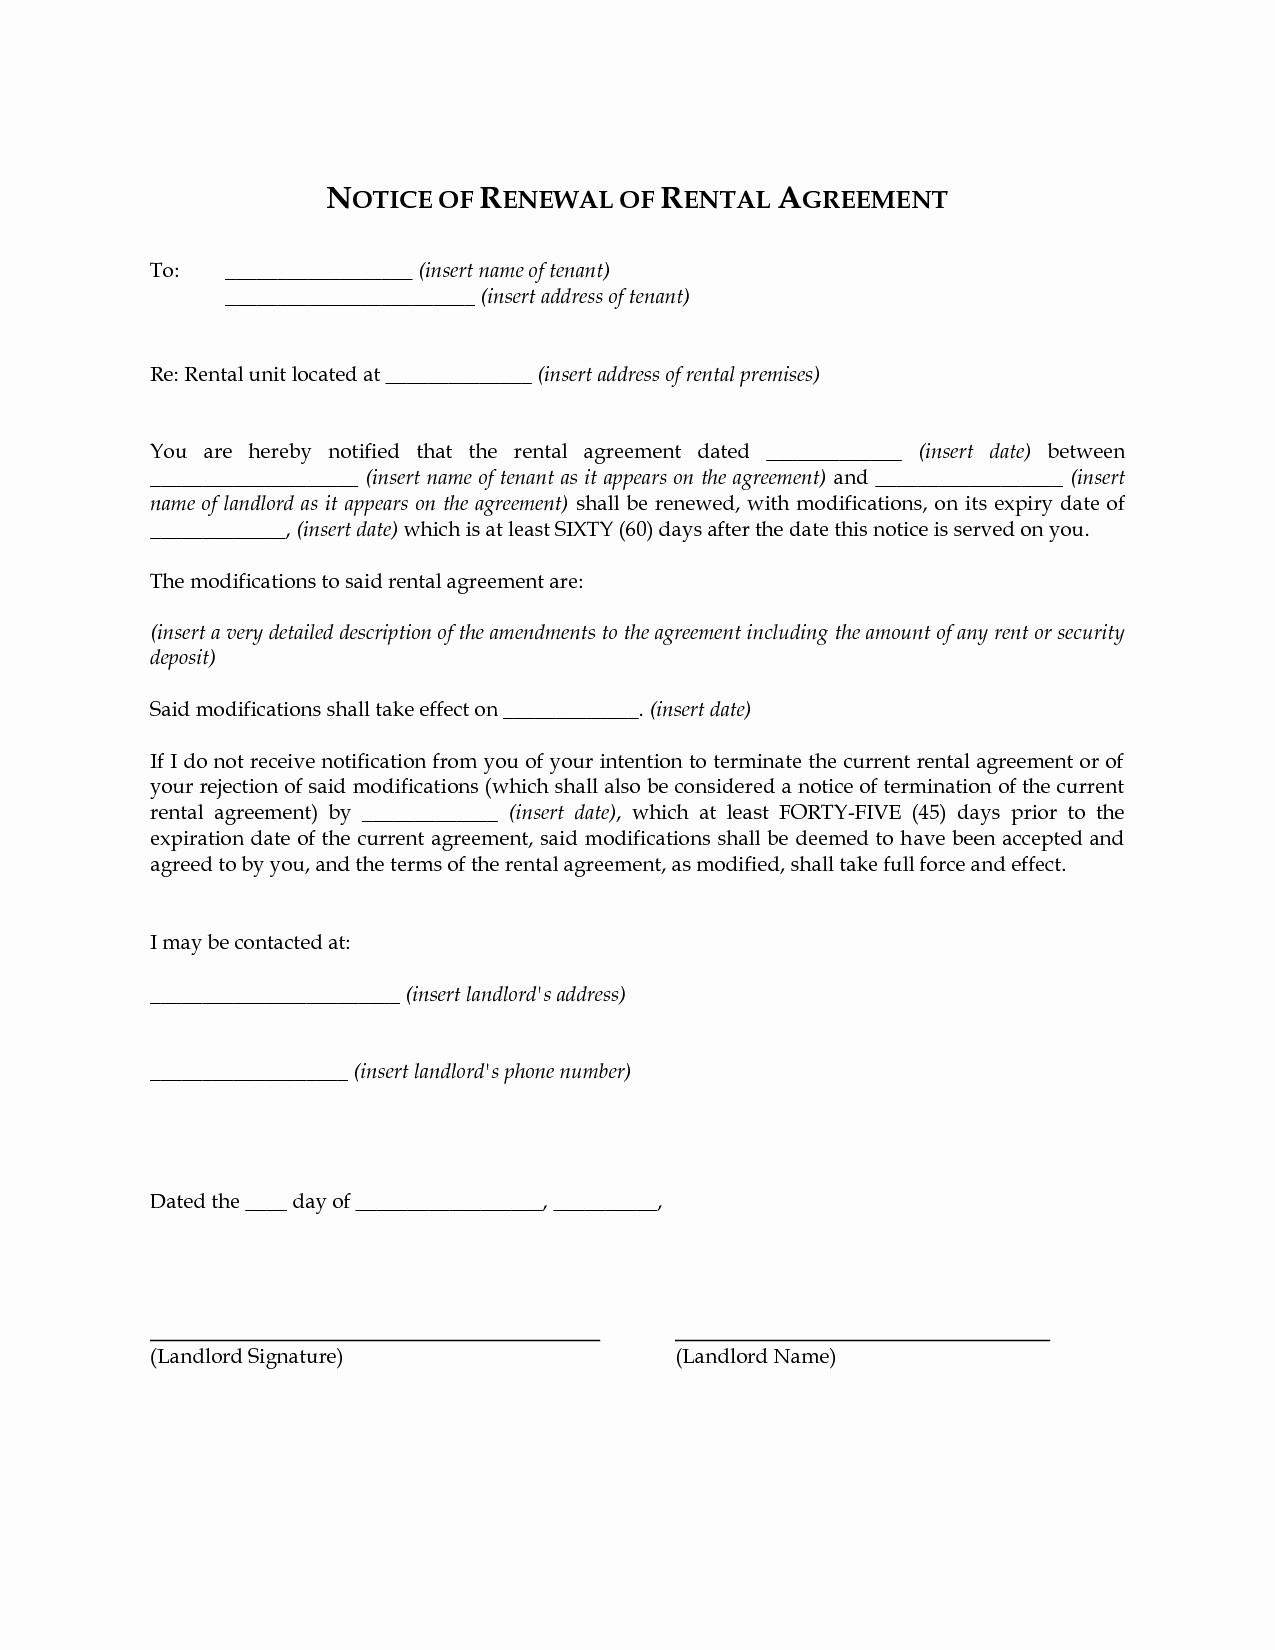 Lease Renewal Notice to Tenant Best Of Letter Intent to Renew Lease Template New Lease Renewal